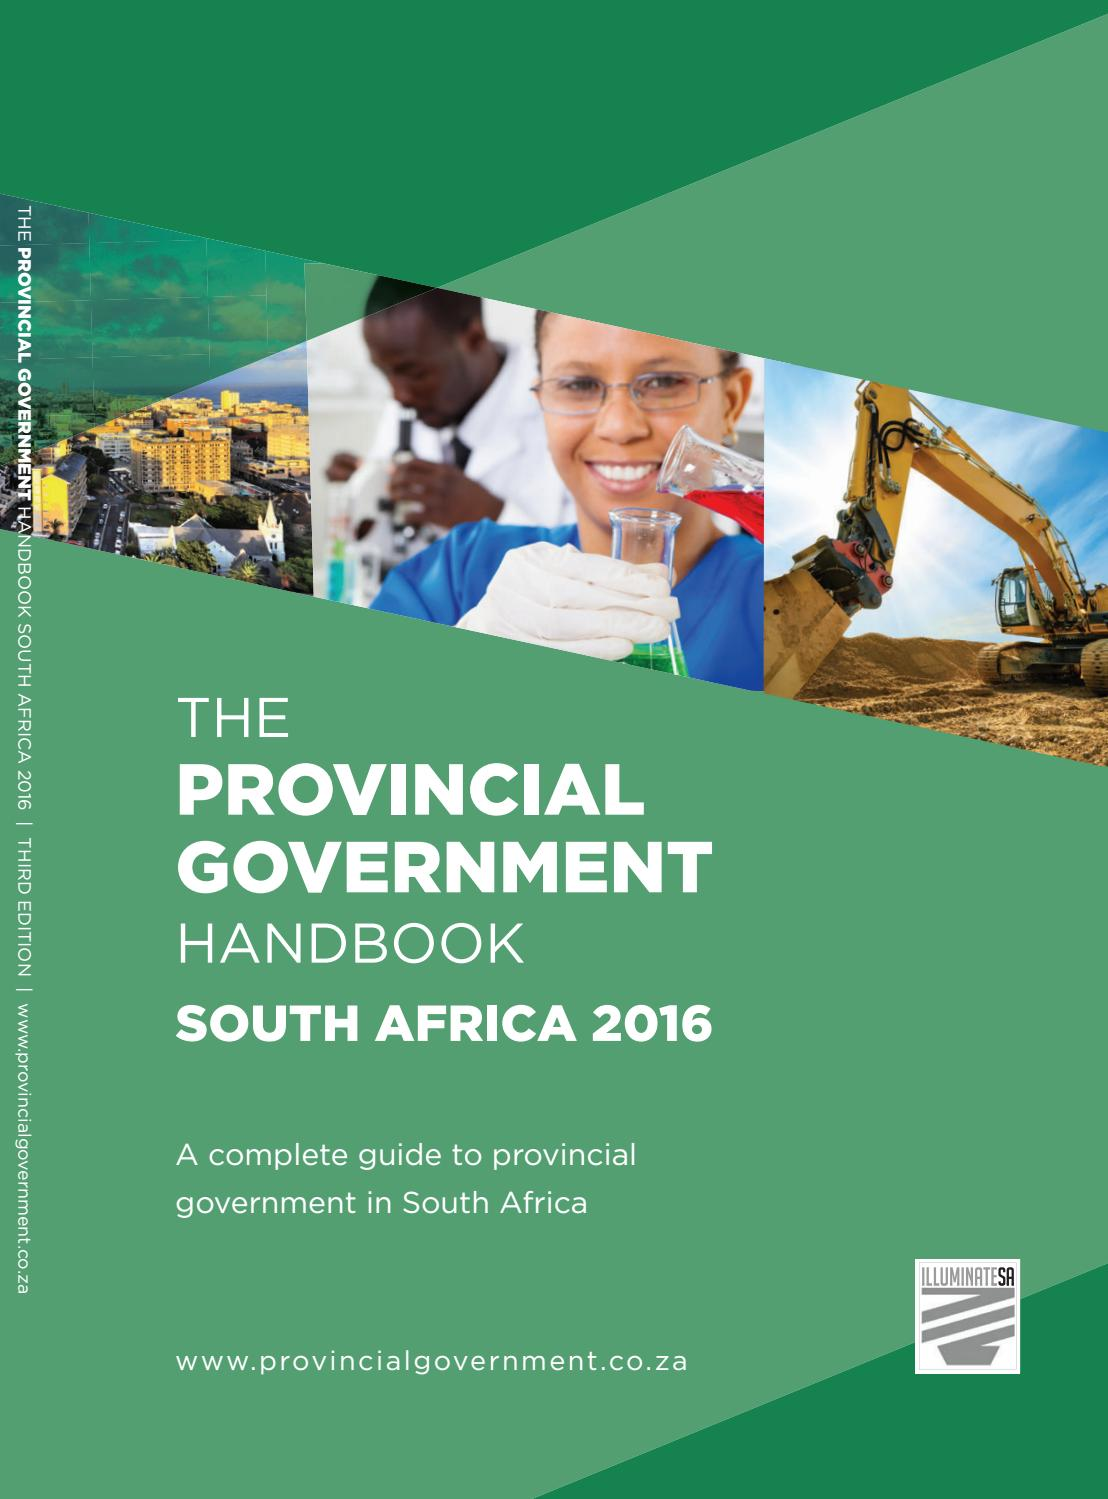 Provincial Government Handbook  South Africa 2016 by Yes Media  Issuu